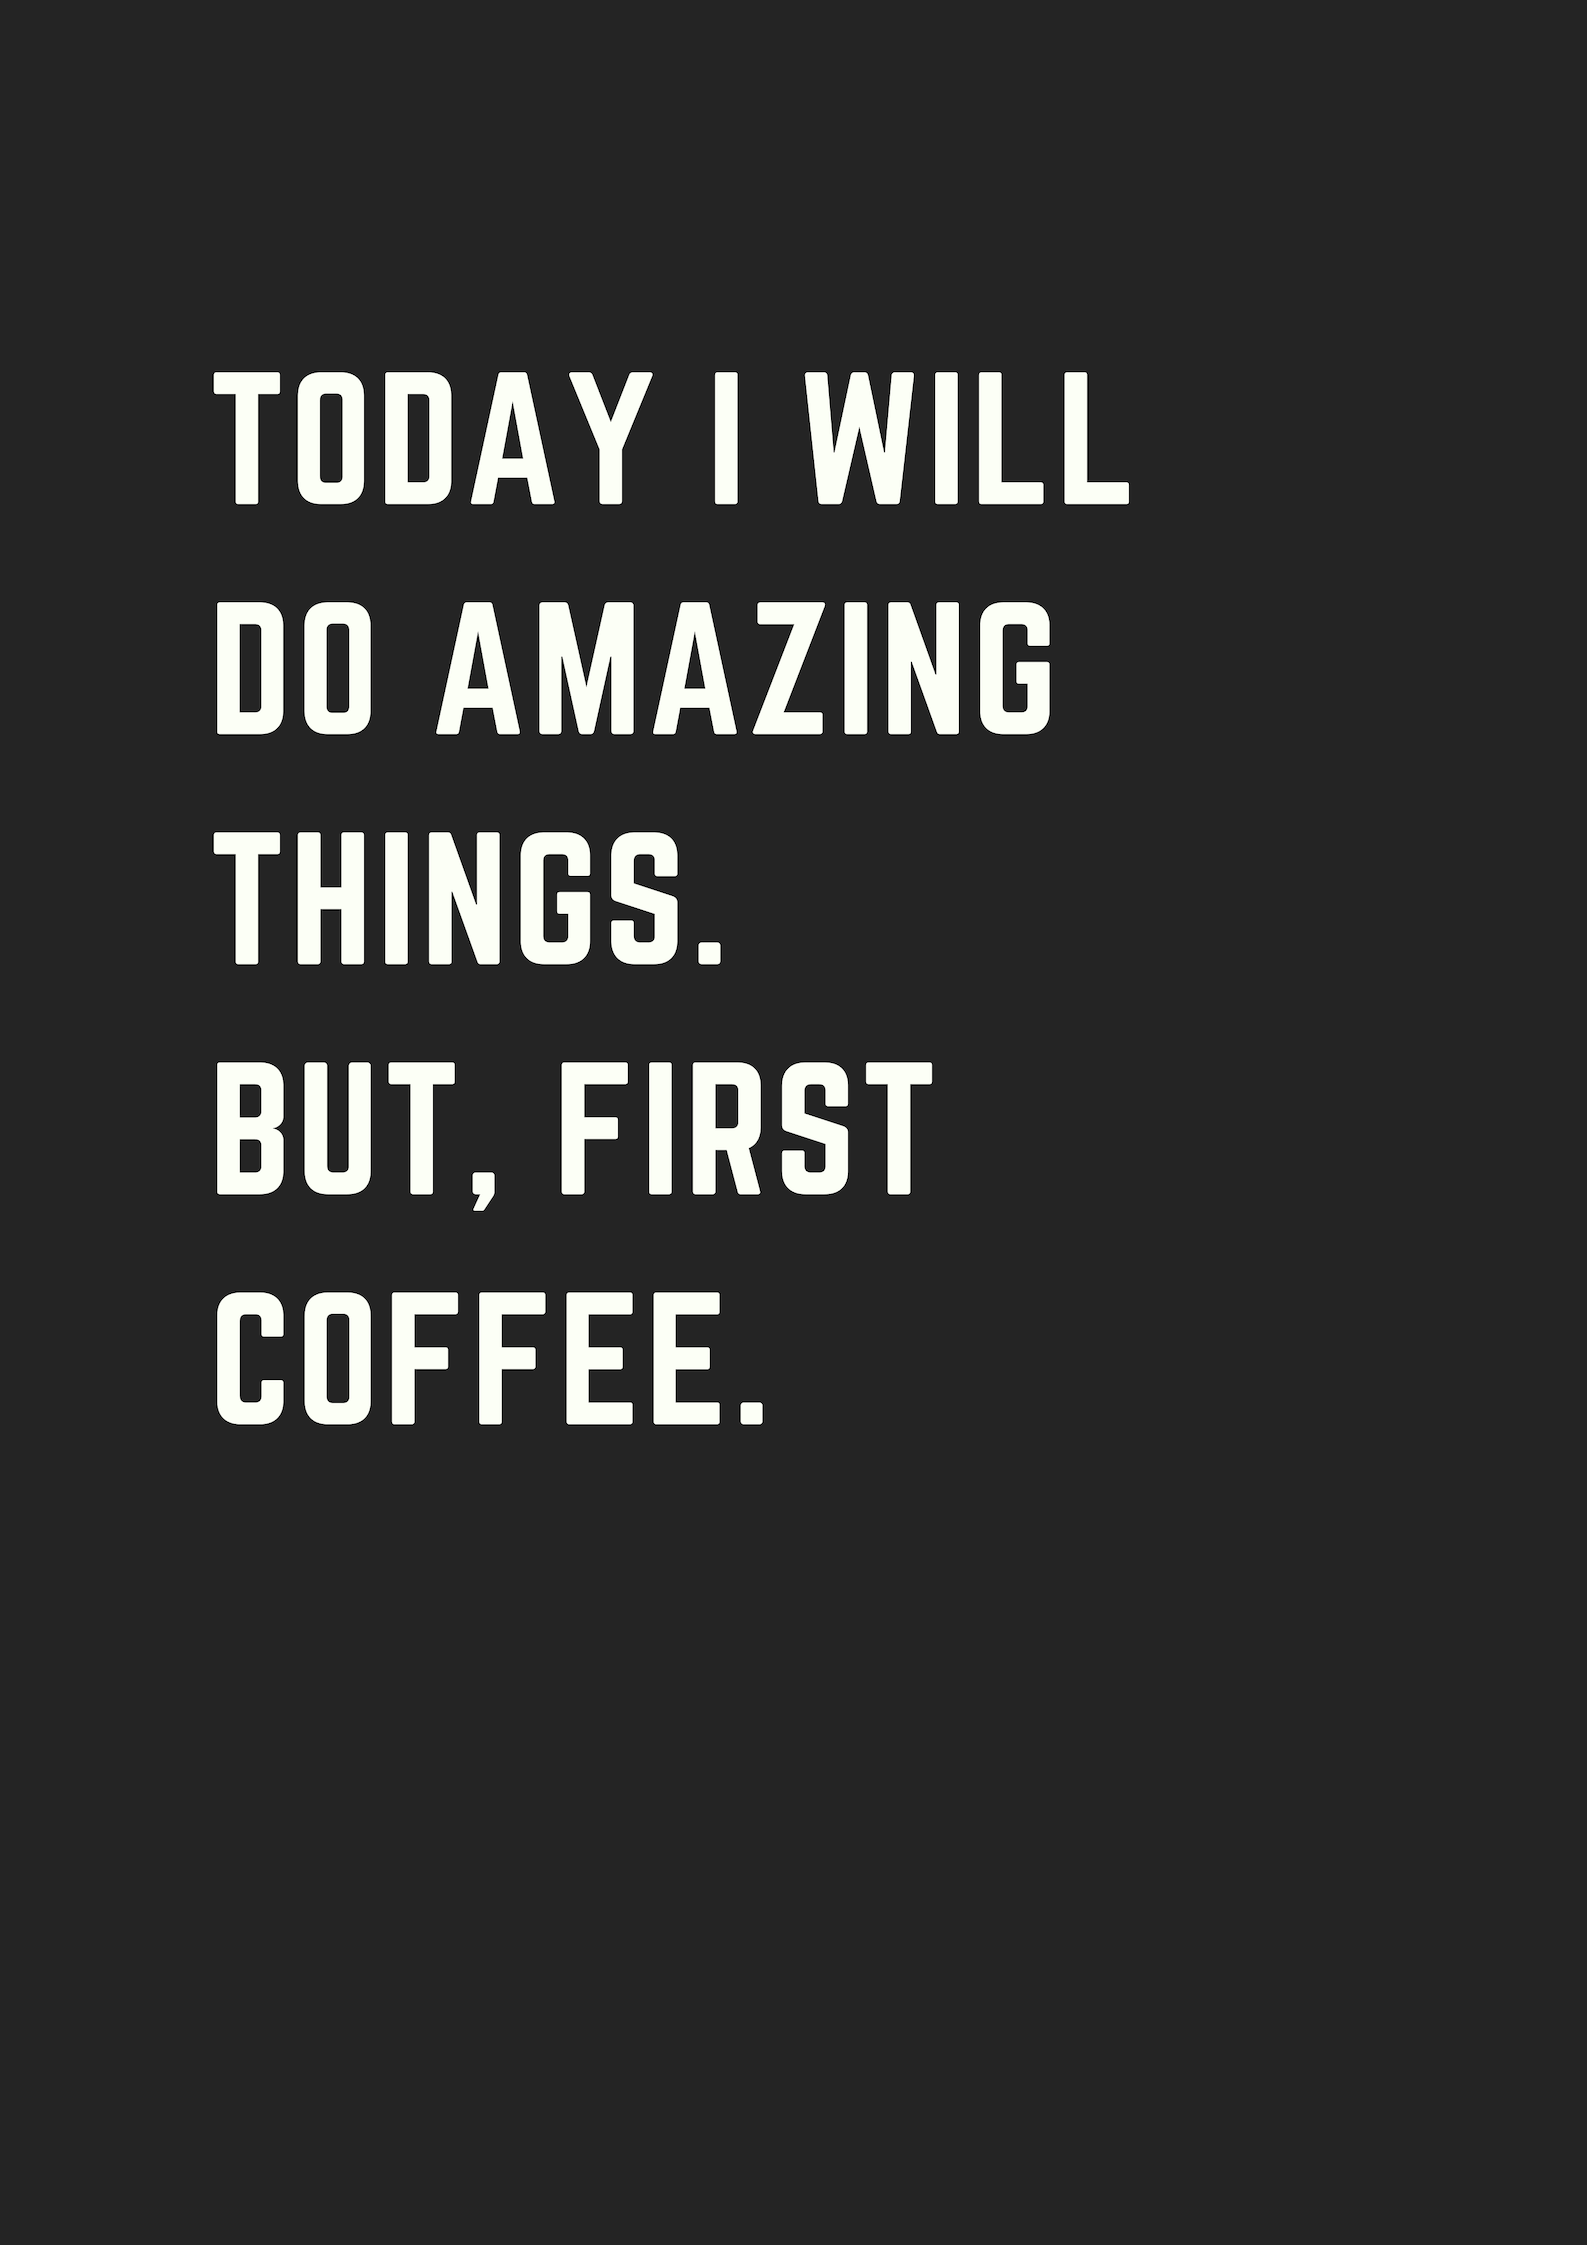 20 More Inspirational Coffee Quotes That Will Boost Your Day Inspirational Coffee Quotes Funny Coffee Quotes Coffee Quotes